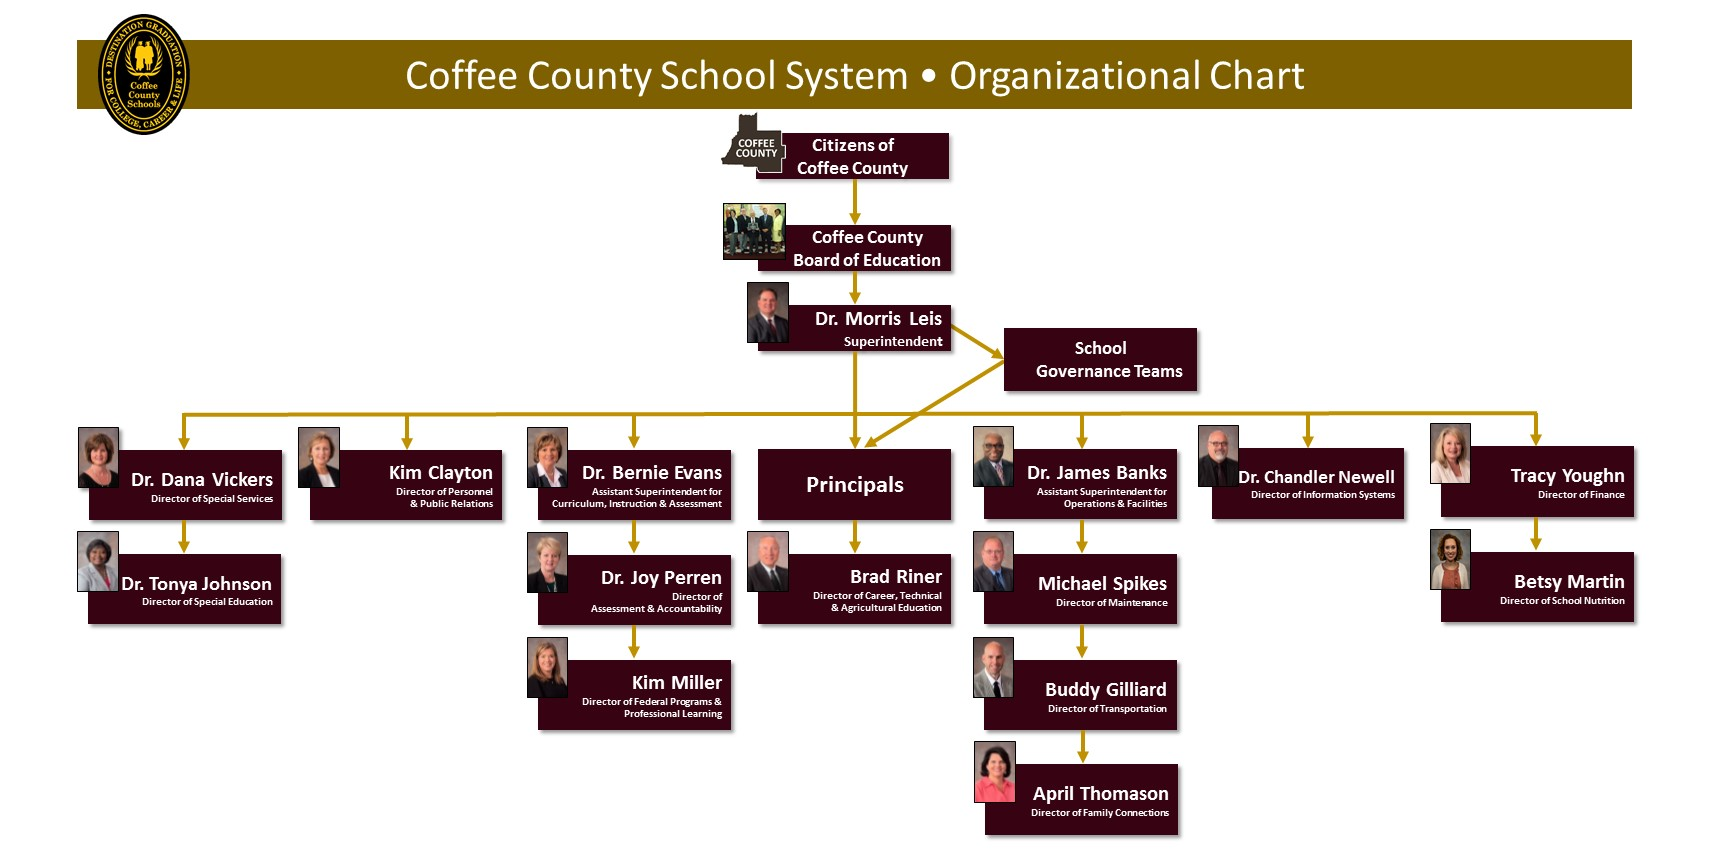 Coffee County Schools Organizational Chart